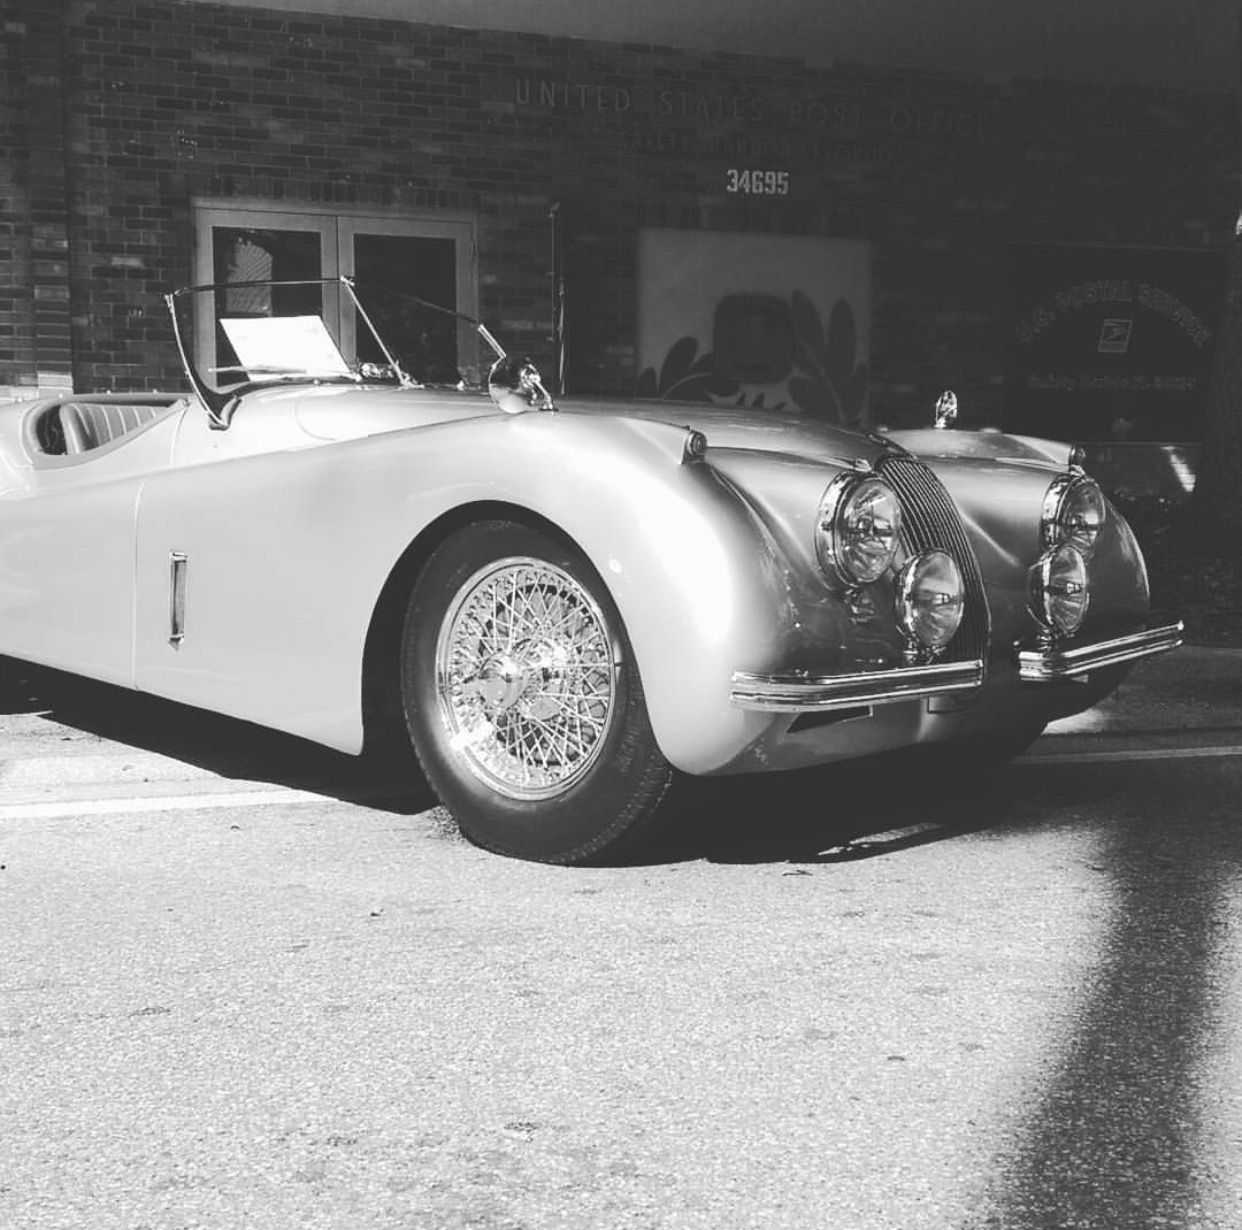 1954 Jaguar Xk140: Jaguar Xk, Antique Cars, Jaguar